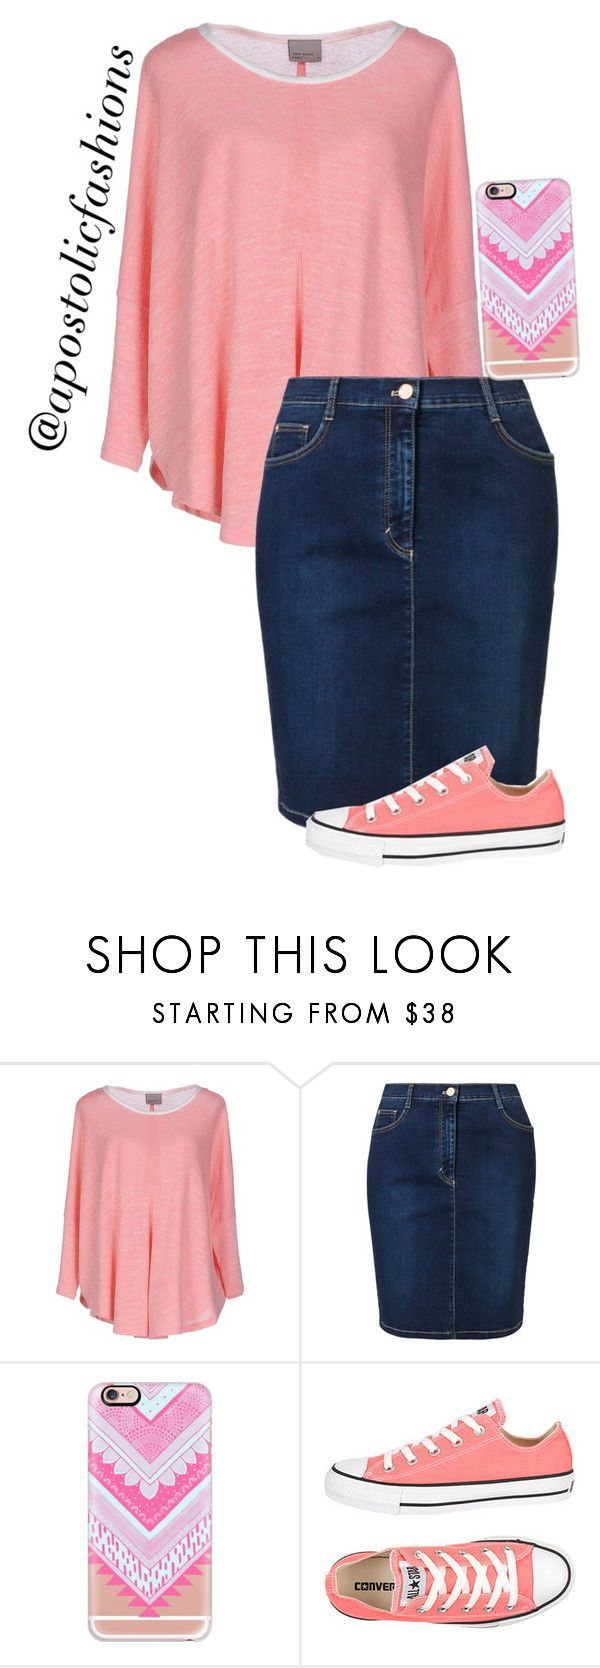 """""""Apostolic Fashions #1080"""" by apostolicfashions ❤ liked on Polyvore featuring Vero Moda, Betty Barclay, Casetify and Converse"""